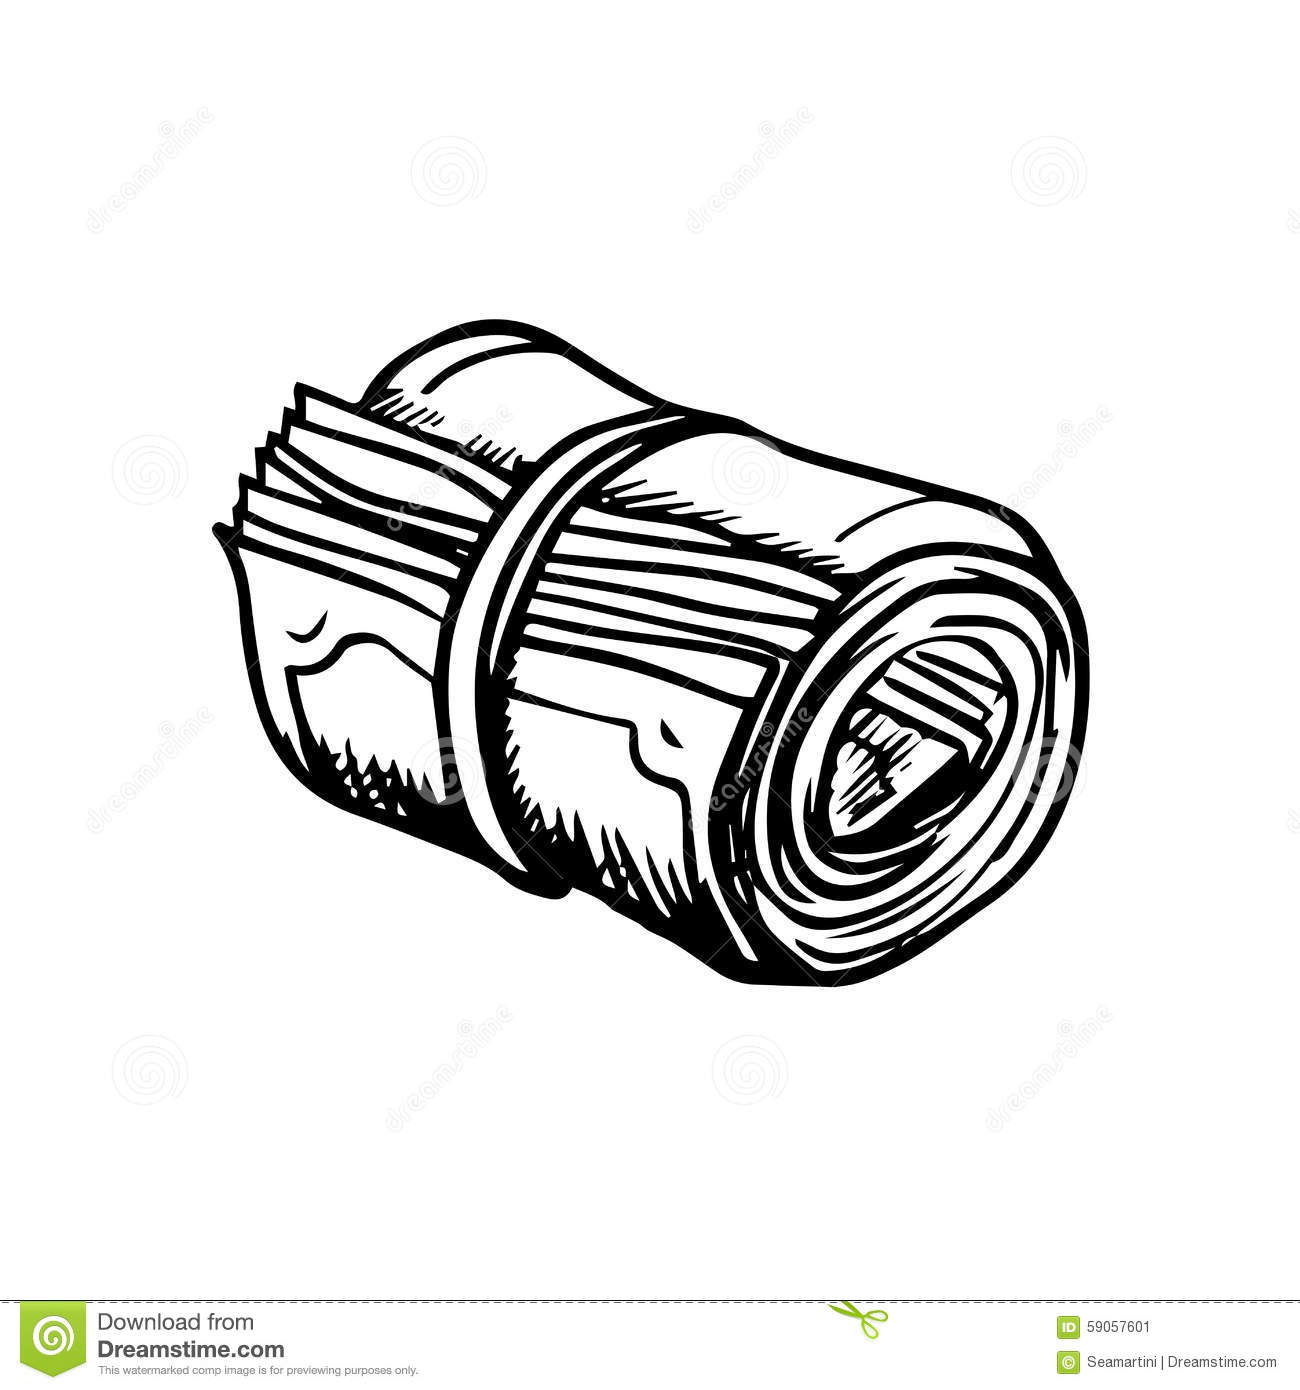 Line Drawing Money : Roll of money sketch icon stock vector illustration